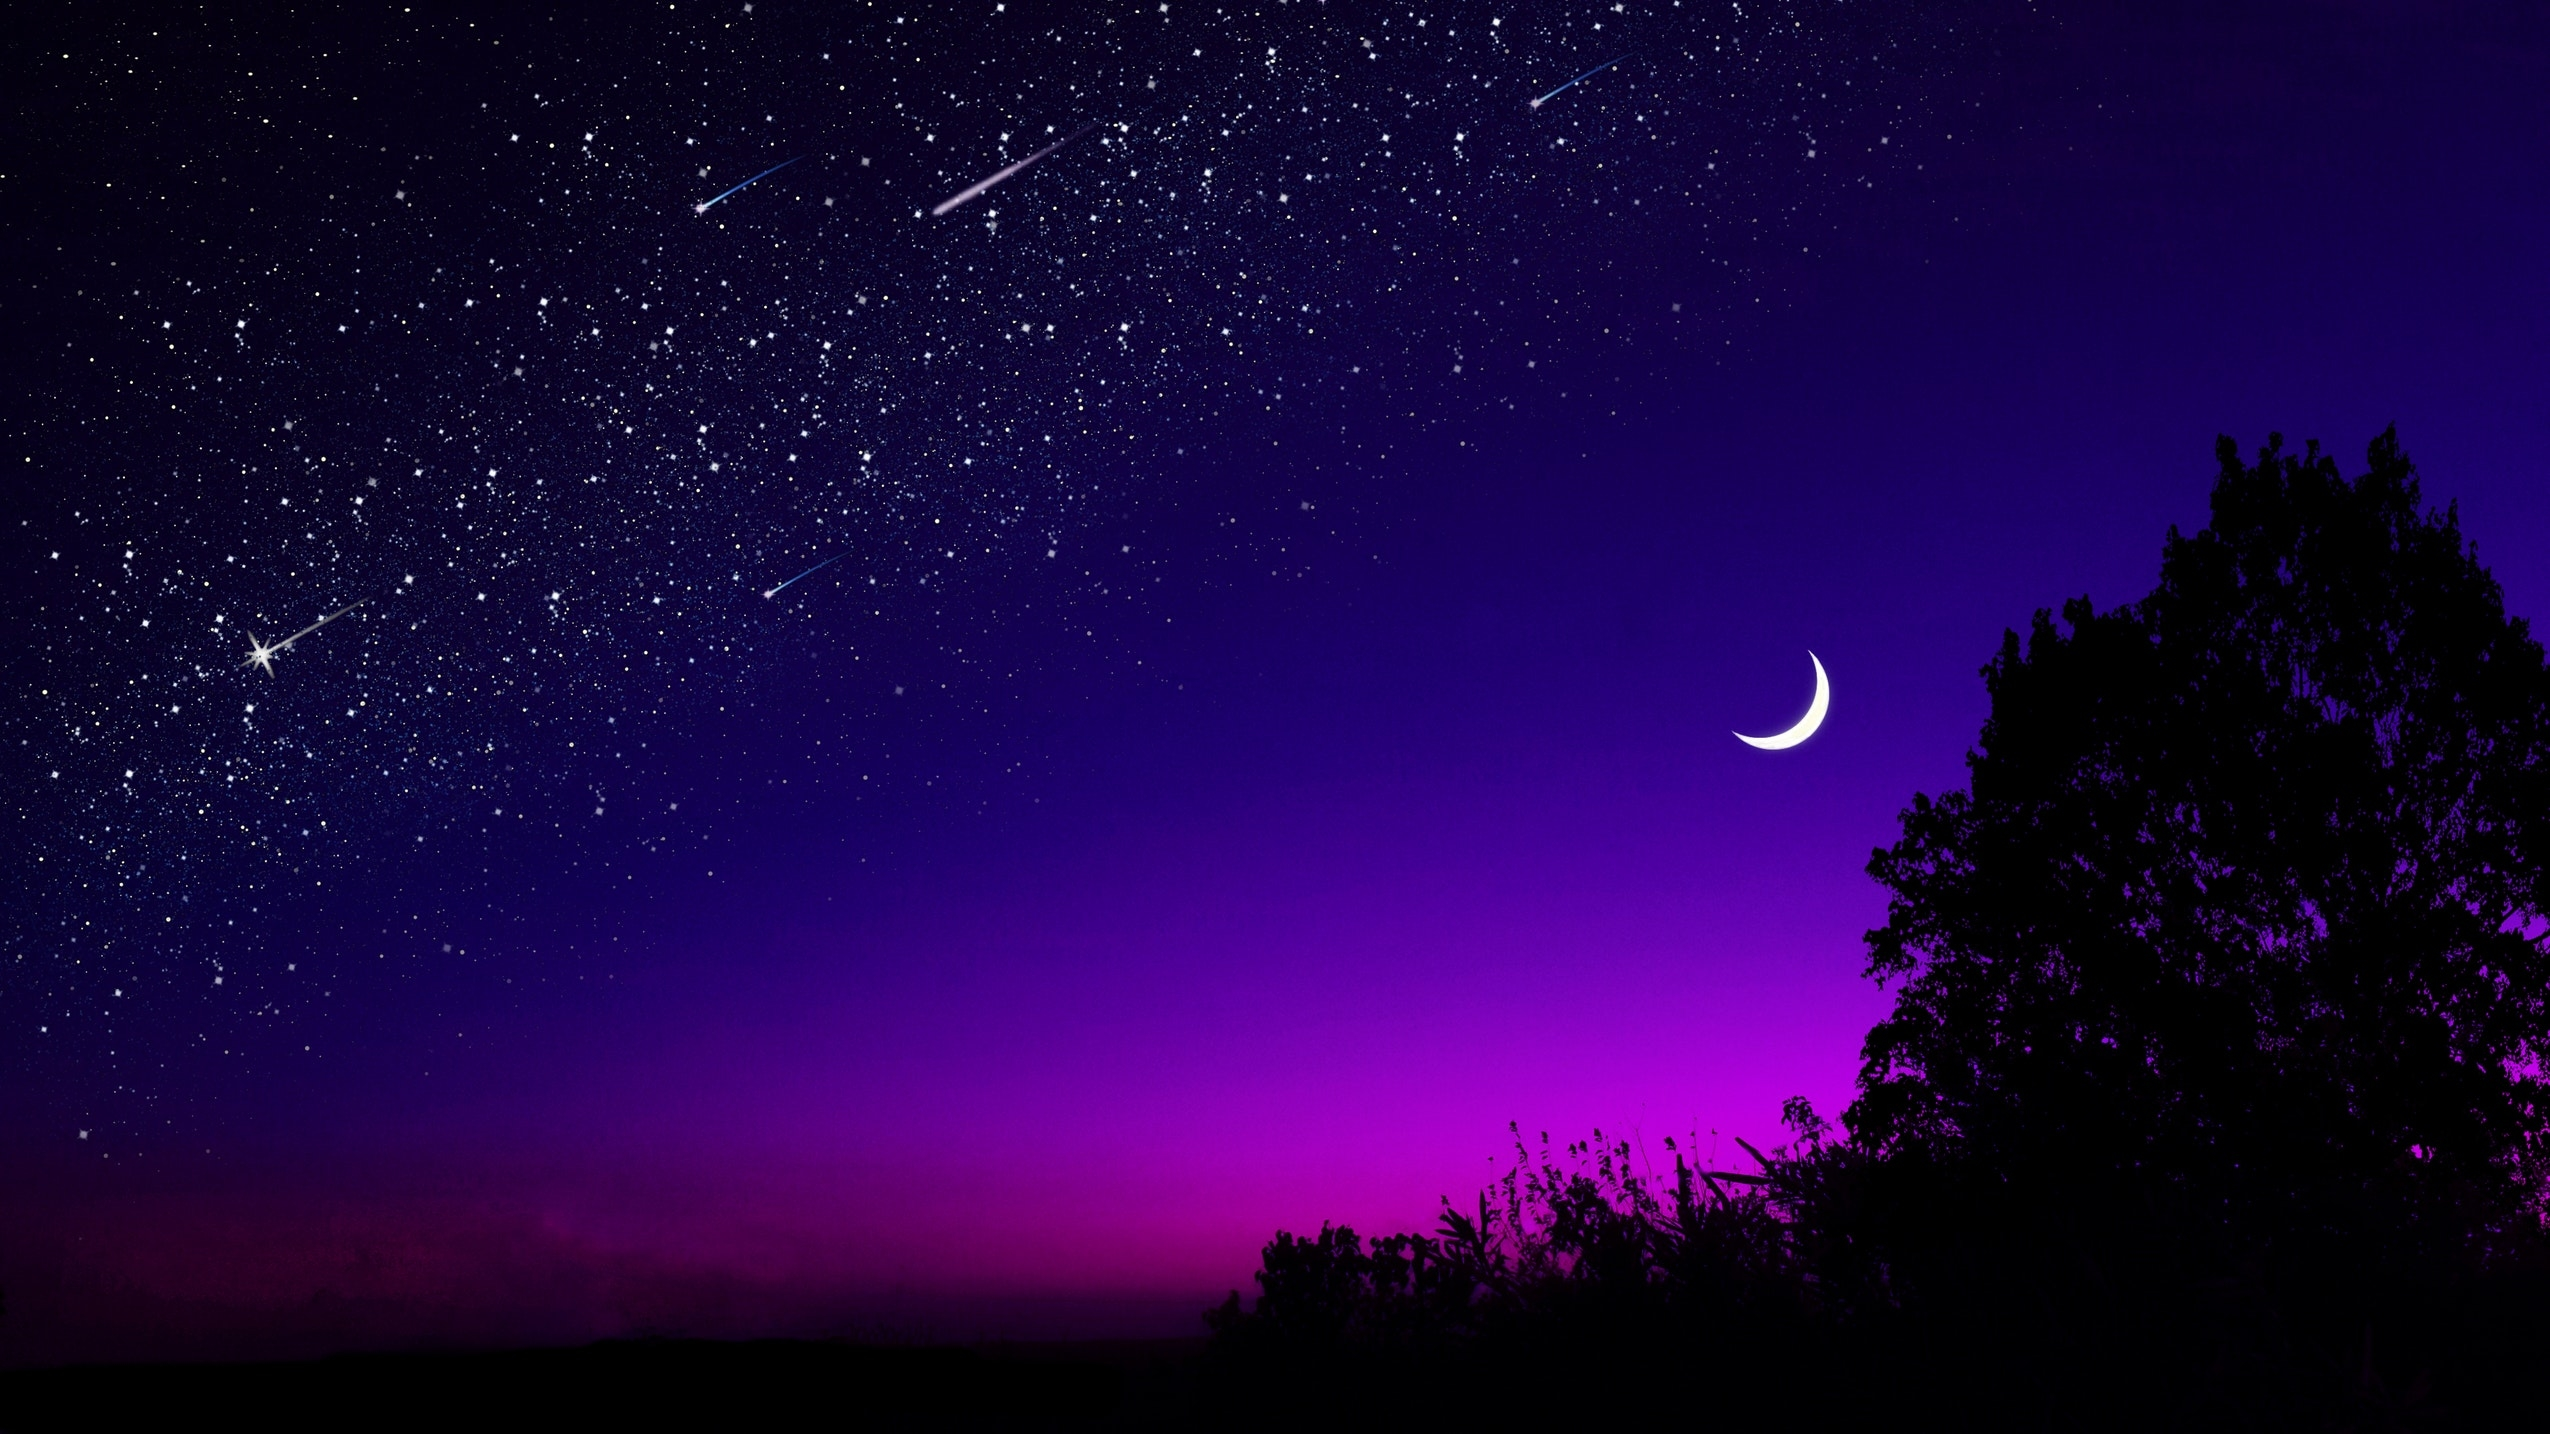 Half Moon Starry Night Wallpaper HD Nature 4K Wallpapers Images 2550x1434